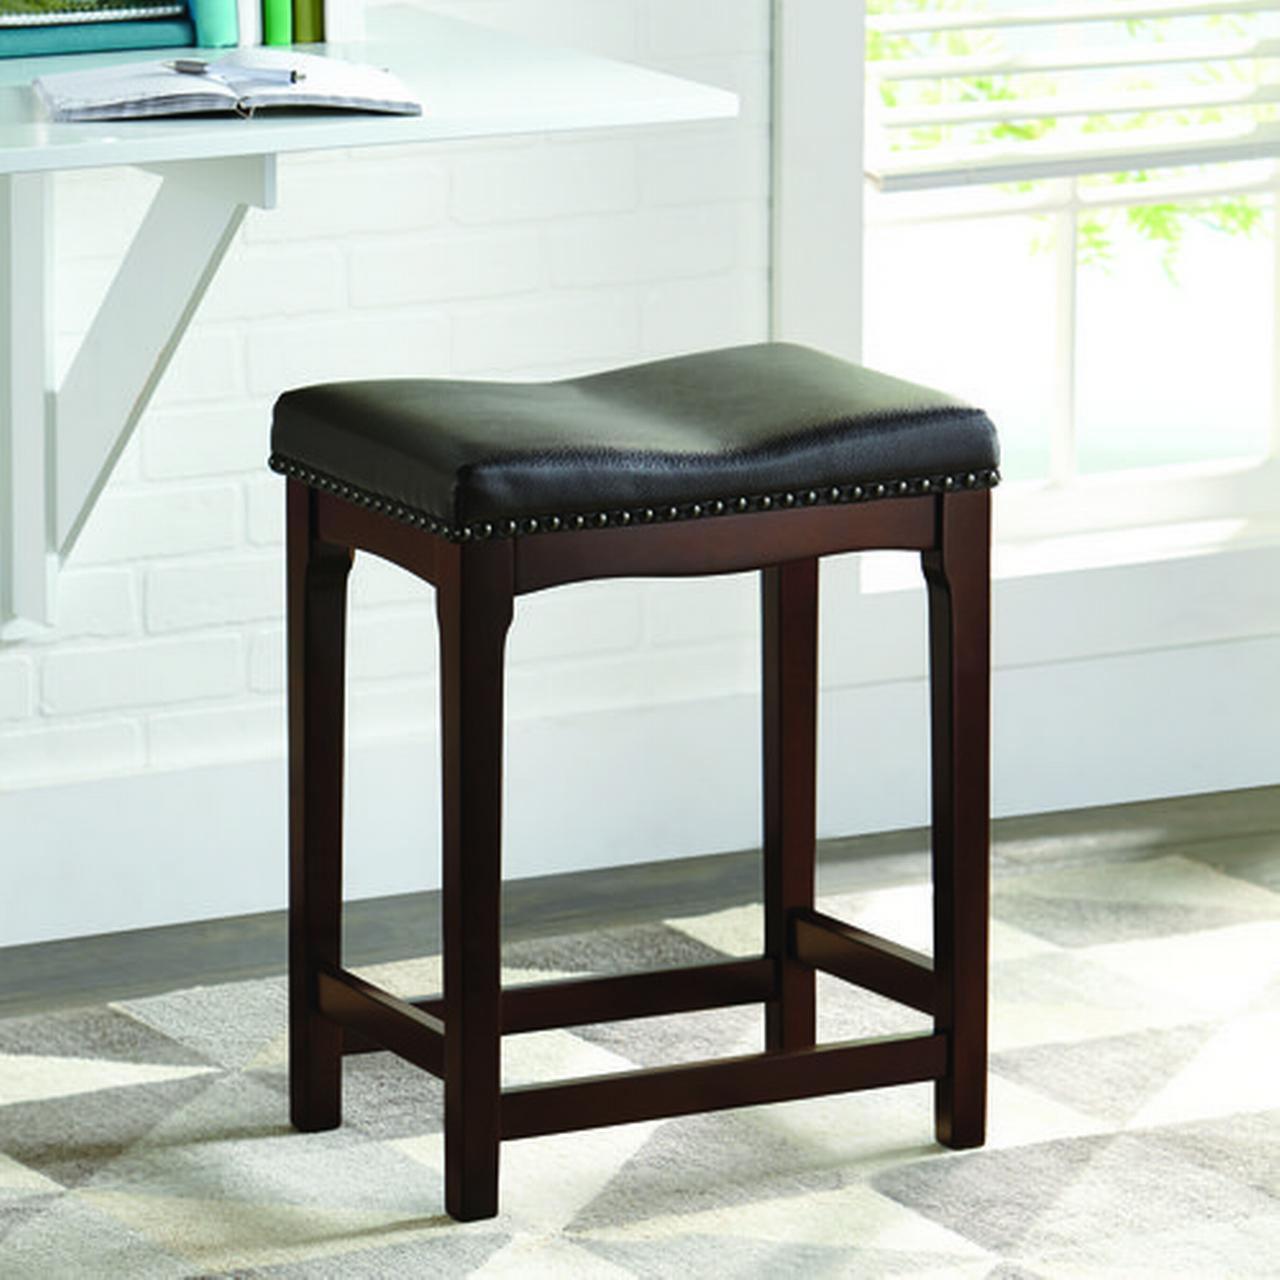 Better Homes And Gardens 24 Quot Padded Saddle Stool Walmart Com